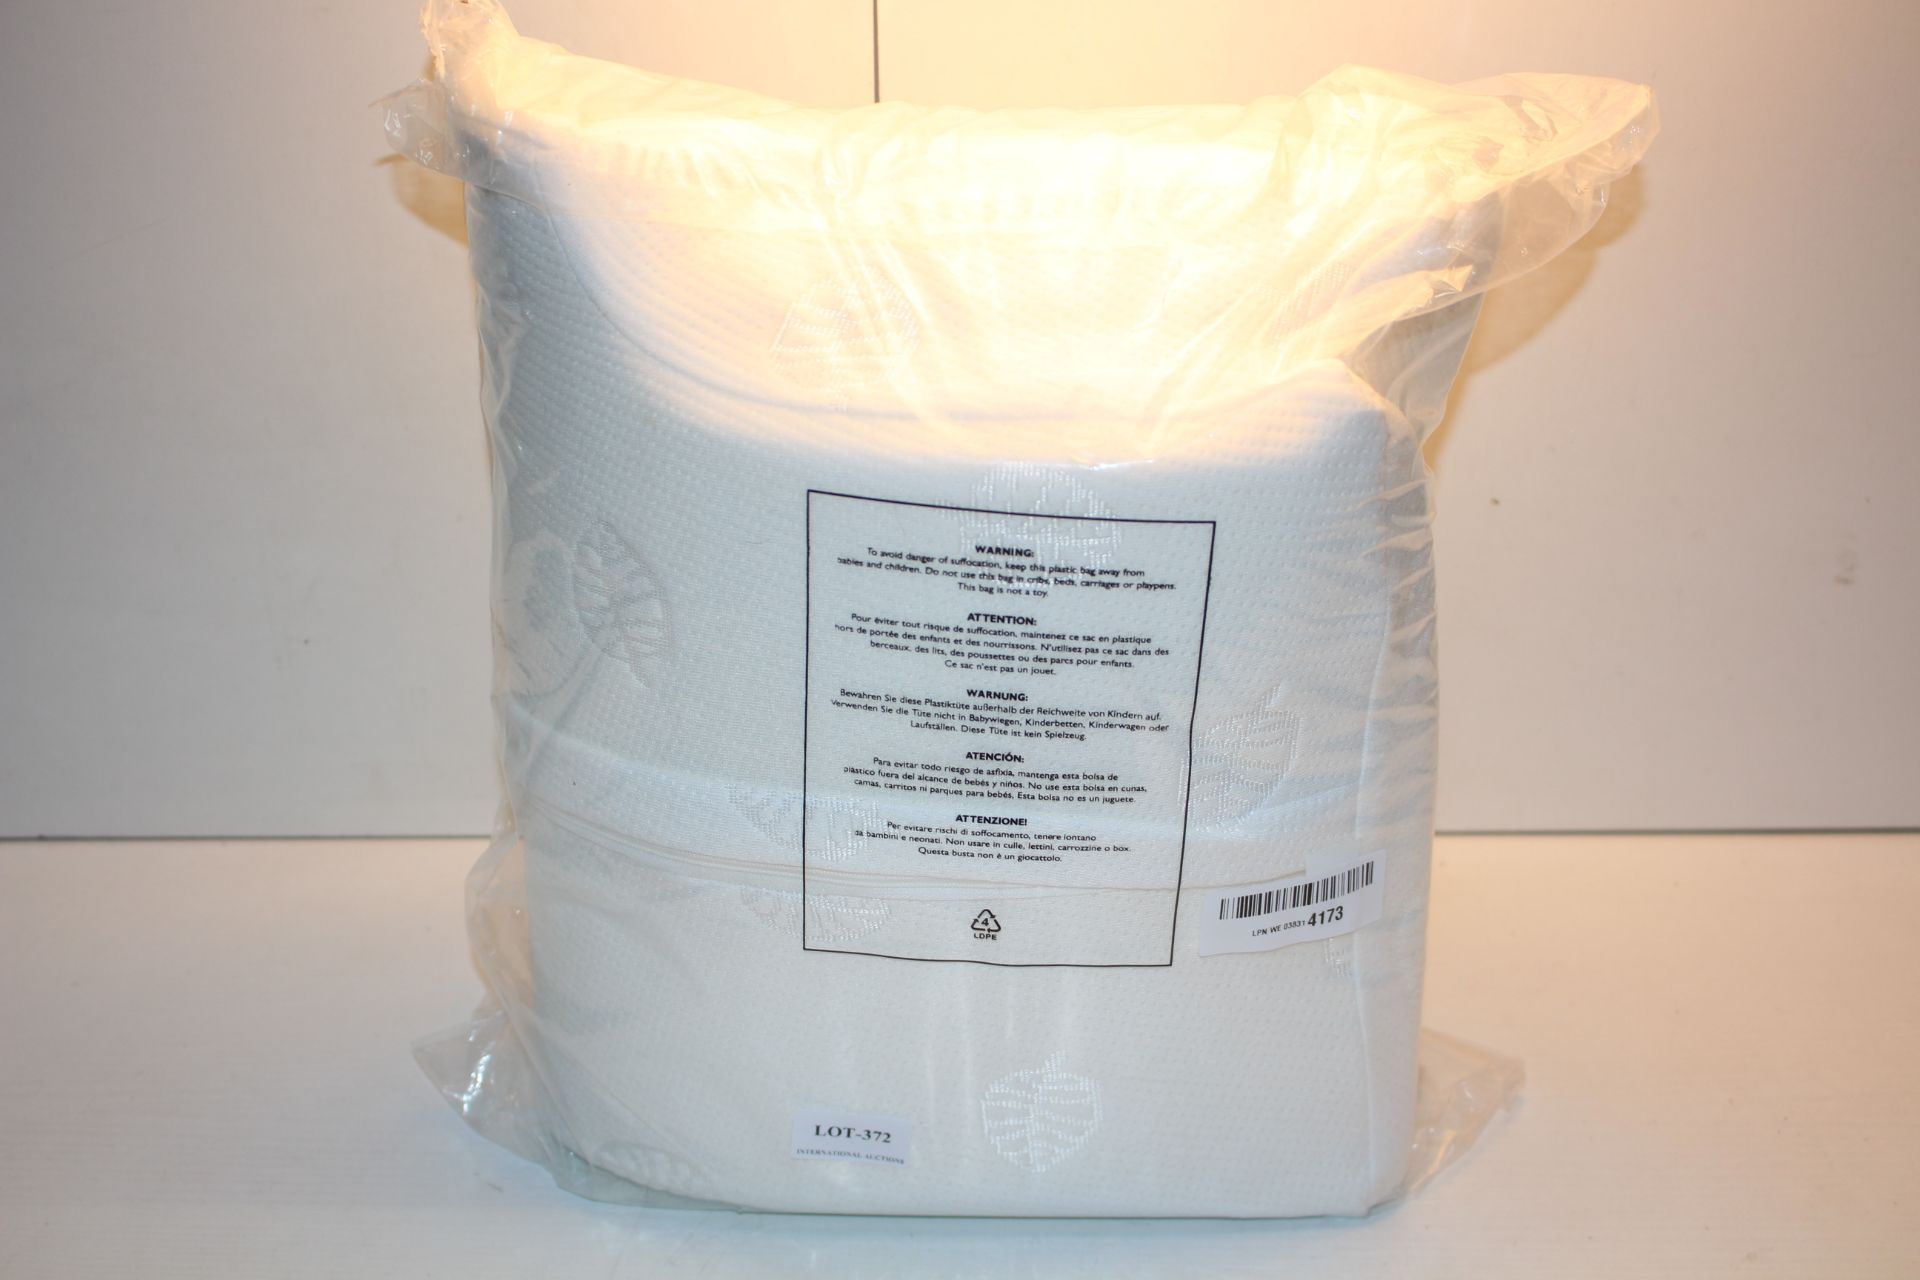 BAGGED ERGONOMIC PILLOW Condition ReportAppraisal Available on Request- All Items are Unchecked/